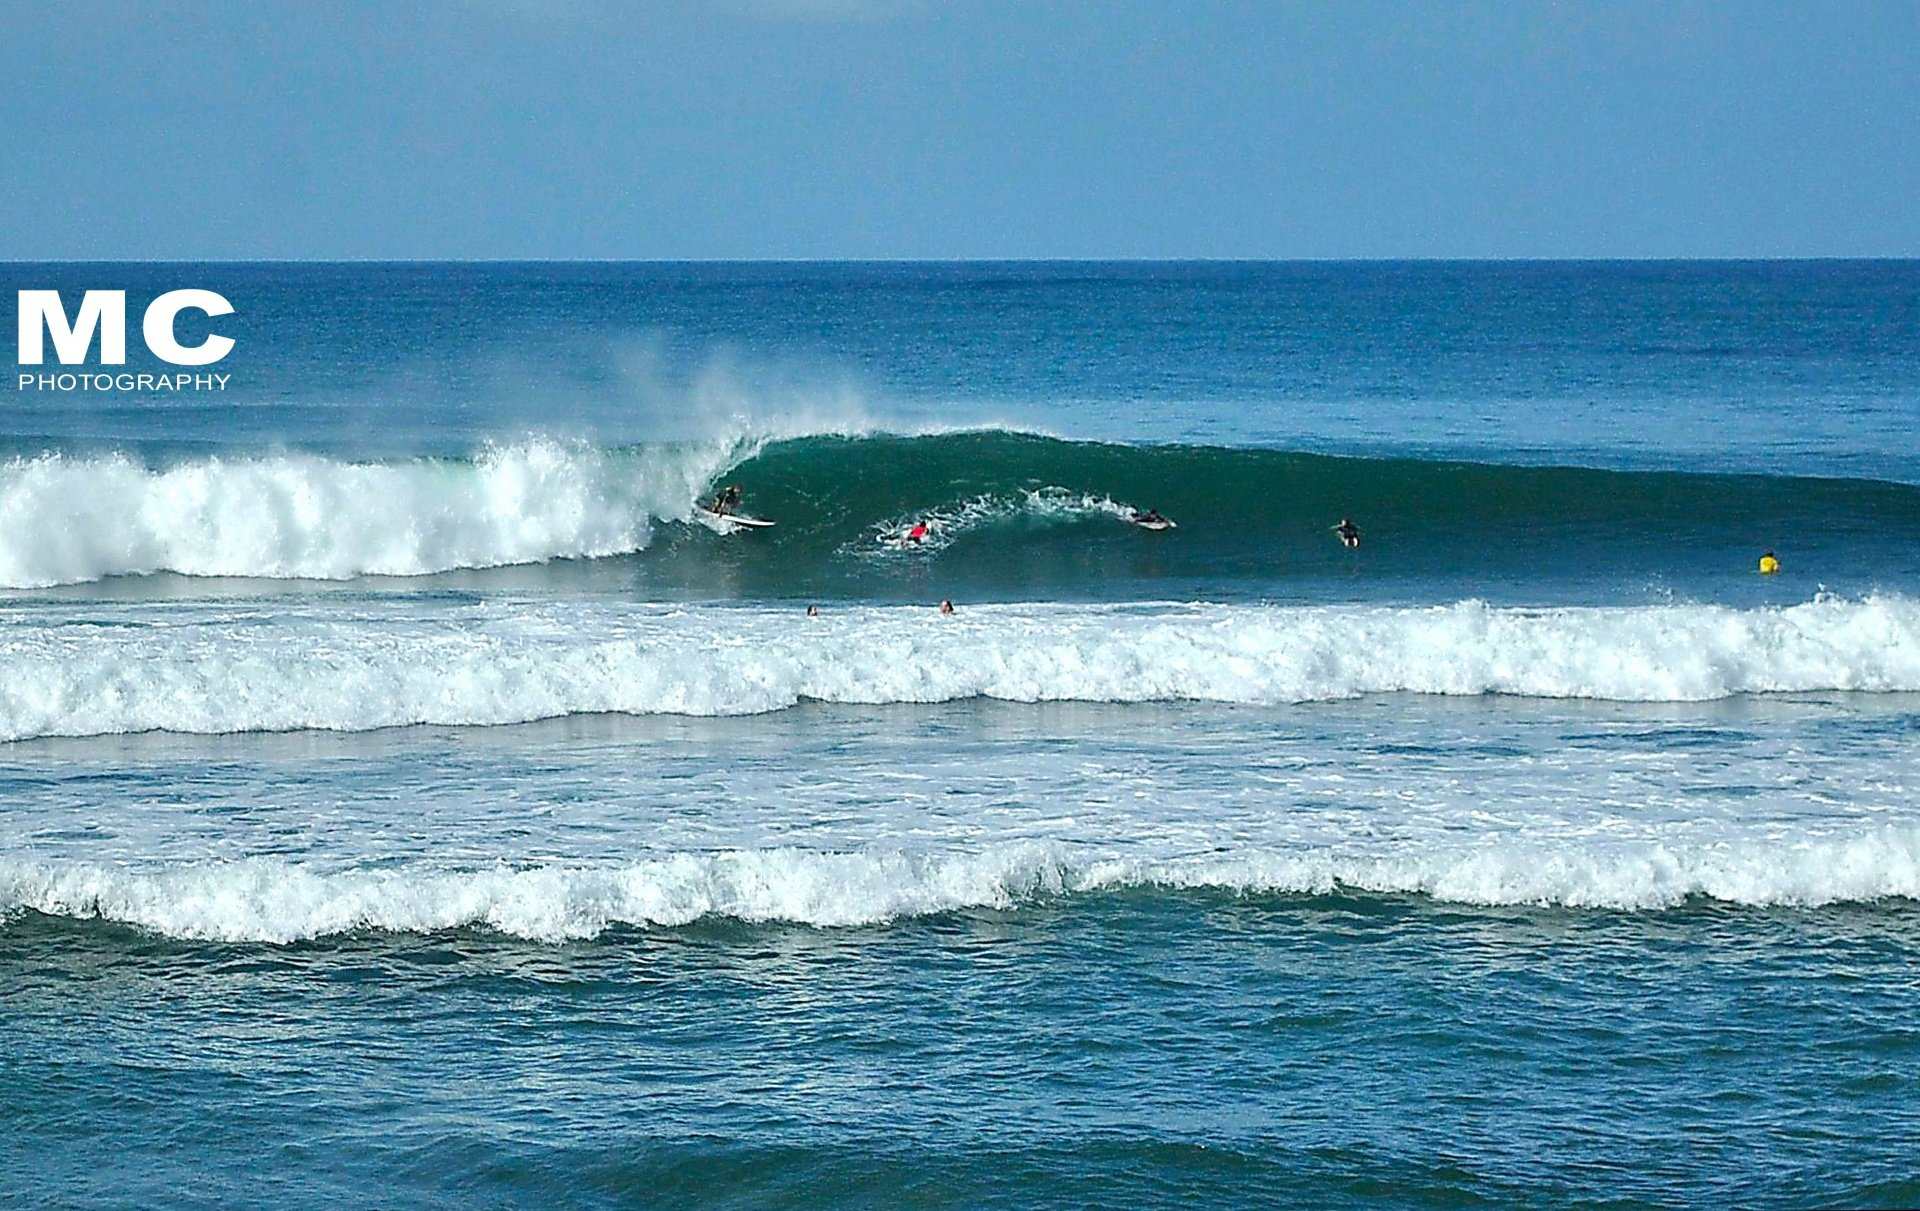 Matt Cardinal's photo of Plage des Surfeurs